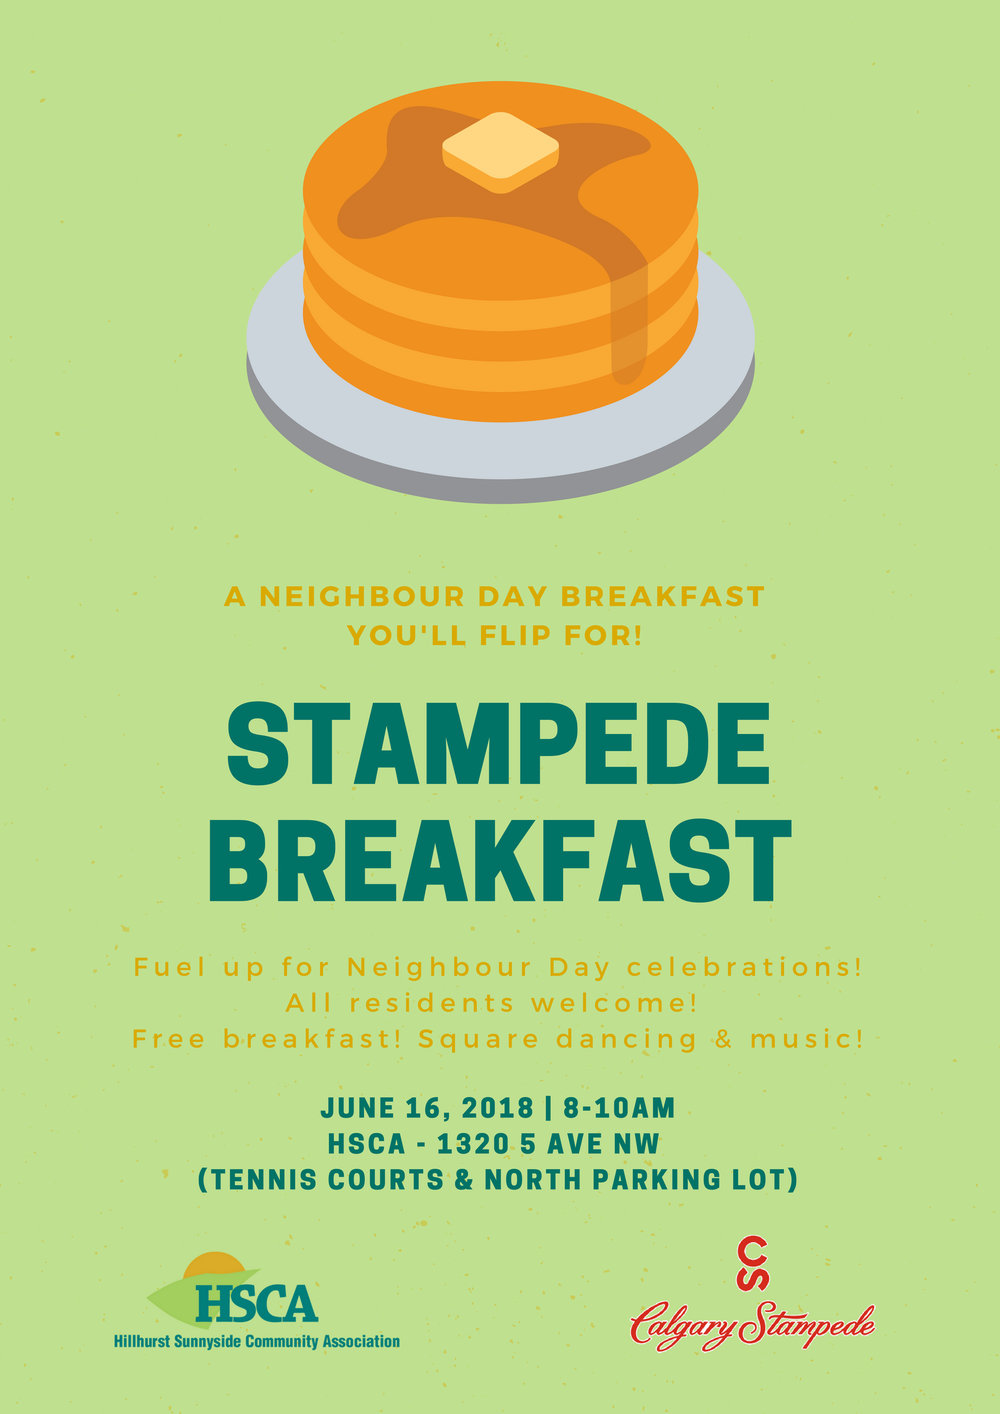 a neighbour day breakfast you'll flip for!.jpg